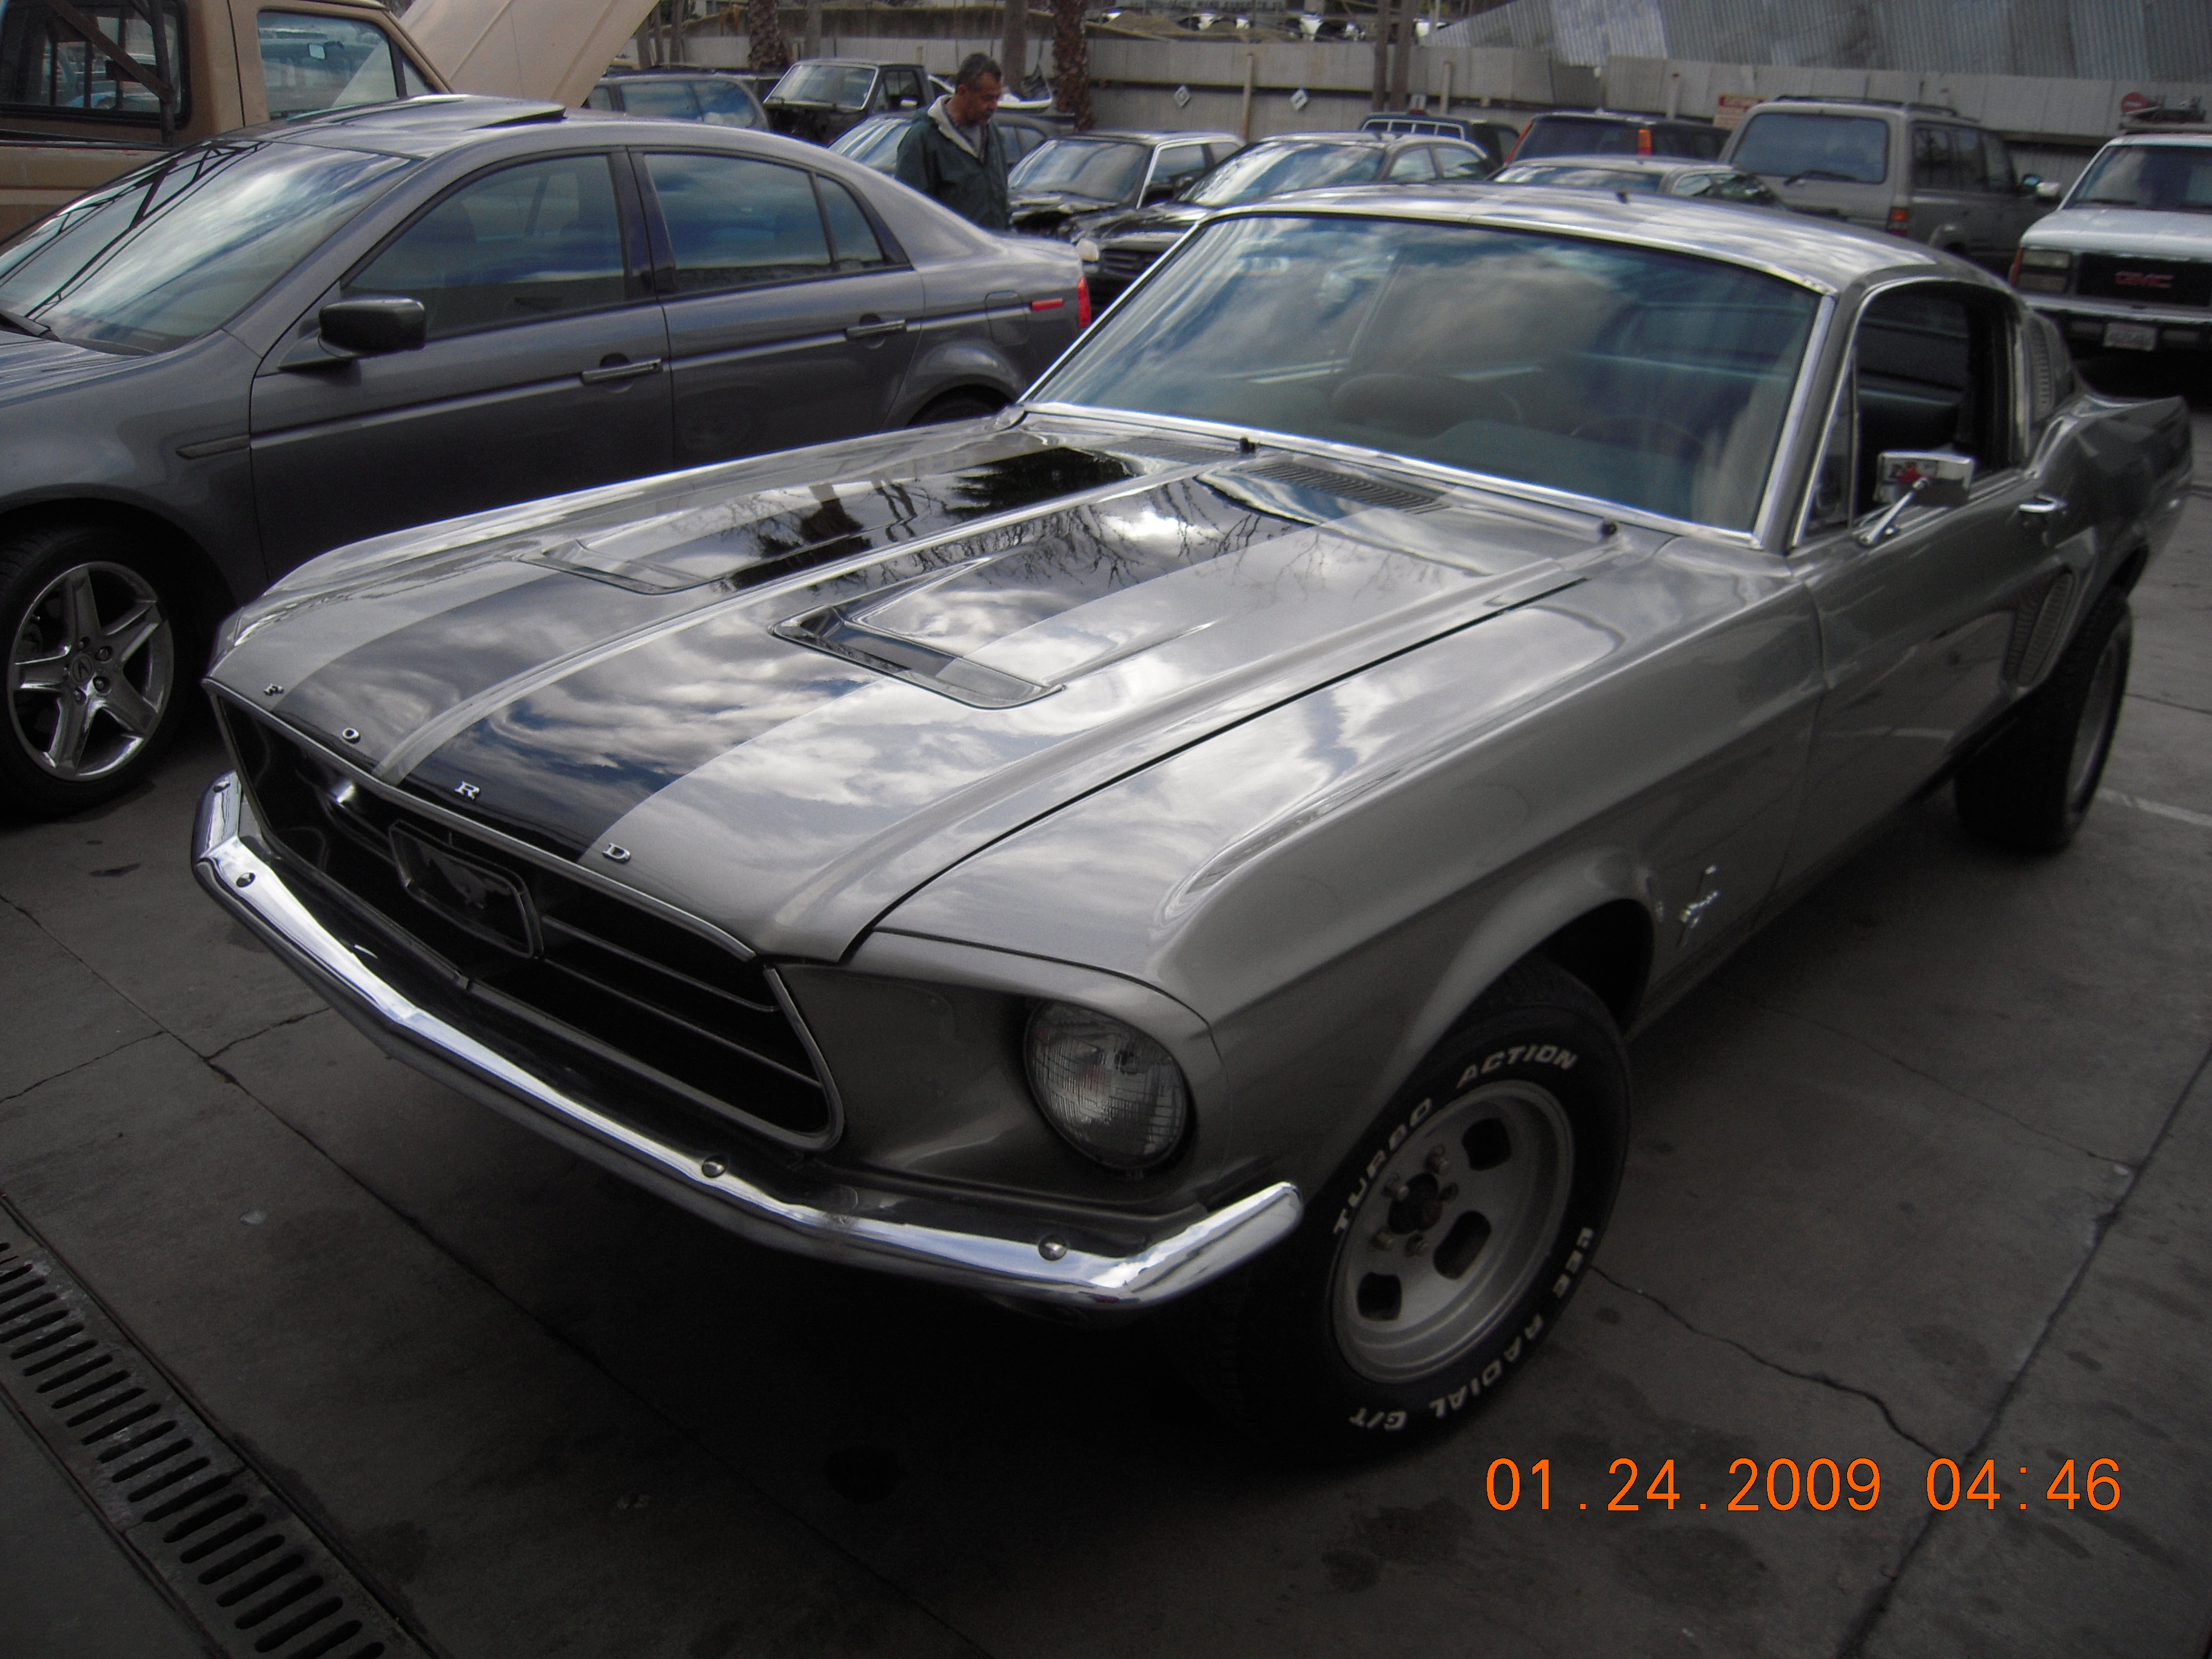 MOPAR CARS AND MUSCLE CARS RESTORATIONS | WEST COAST BODY AND PAINT ...